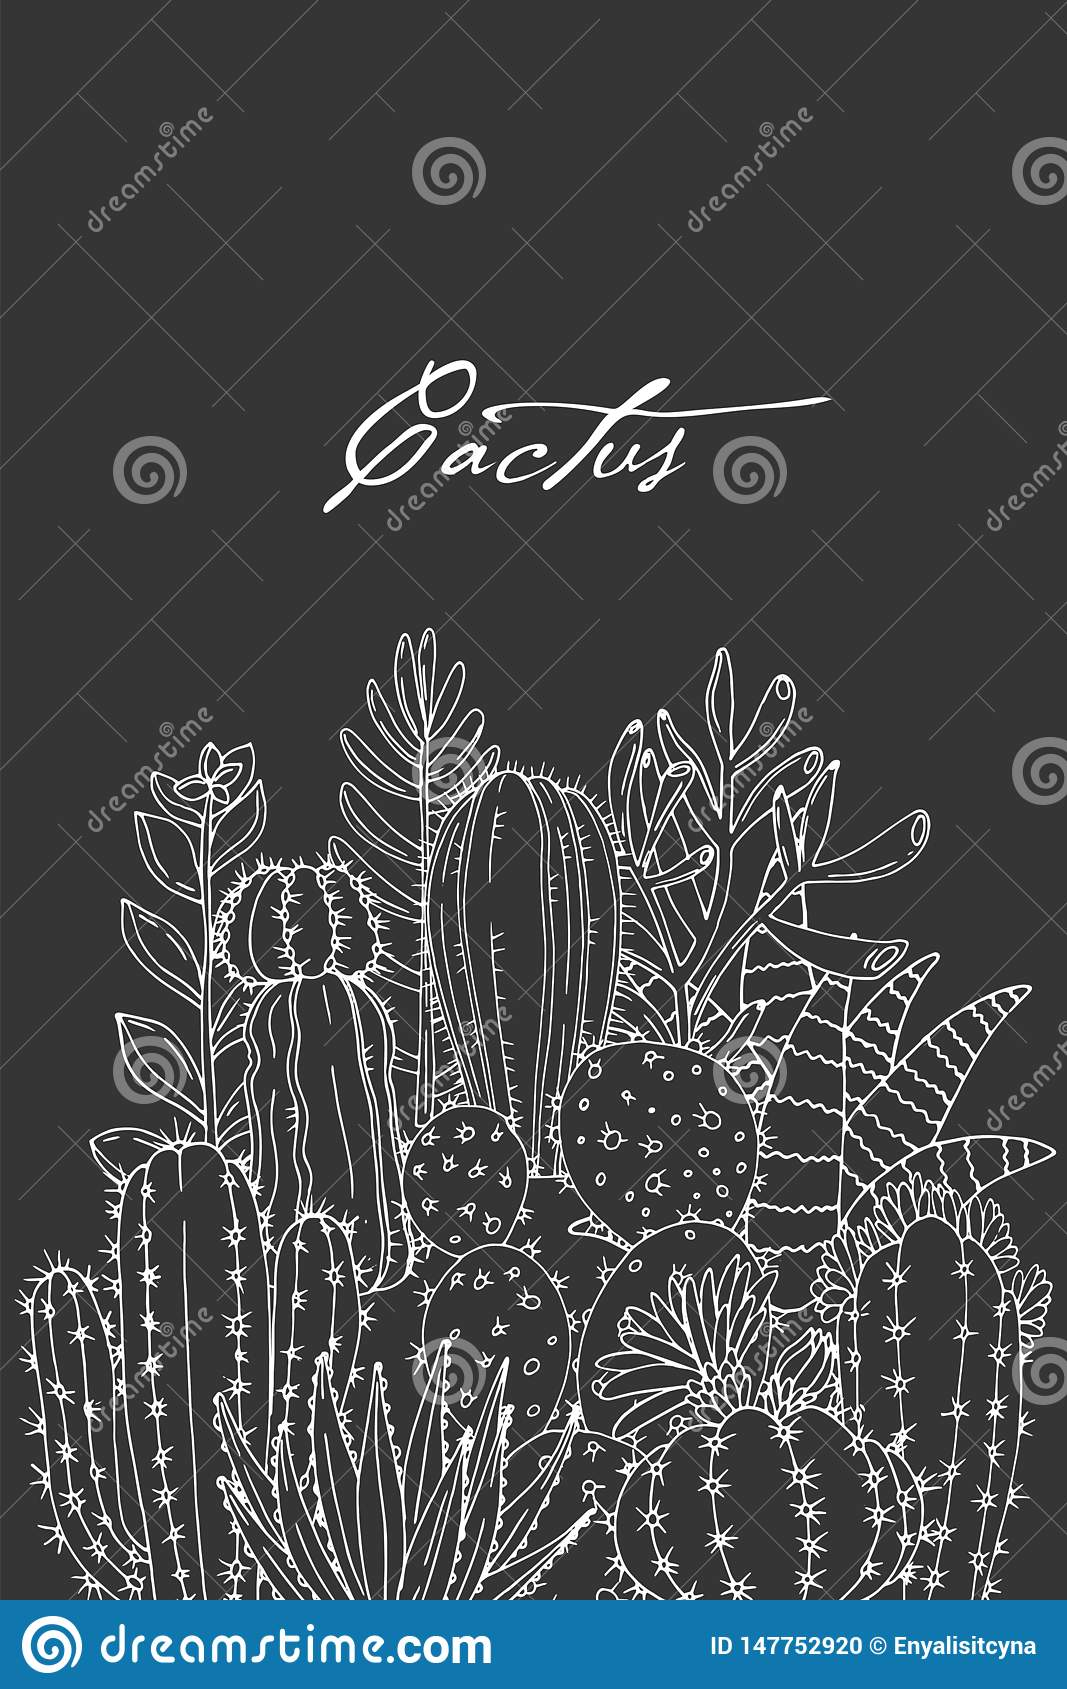 Poster With Ornament Hand Drawn Lettering Cacti And Succulents On A Chalkboard Background Stock Vector Illustration Of Flower Isolated 147752920